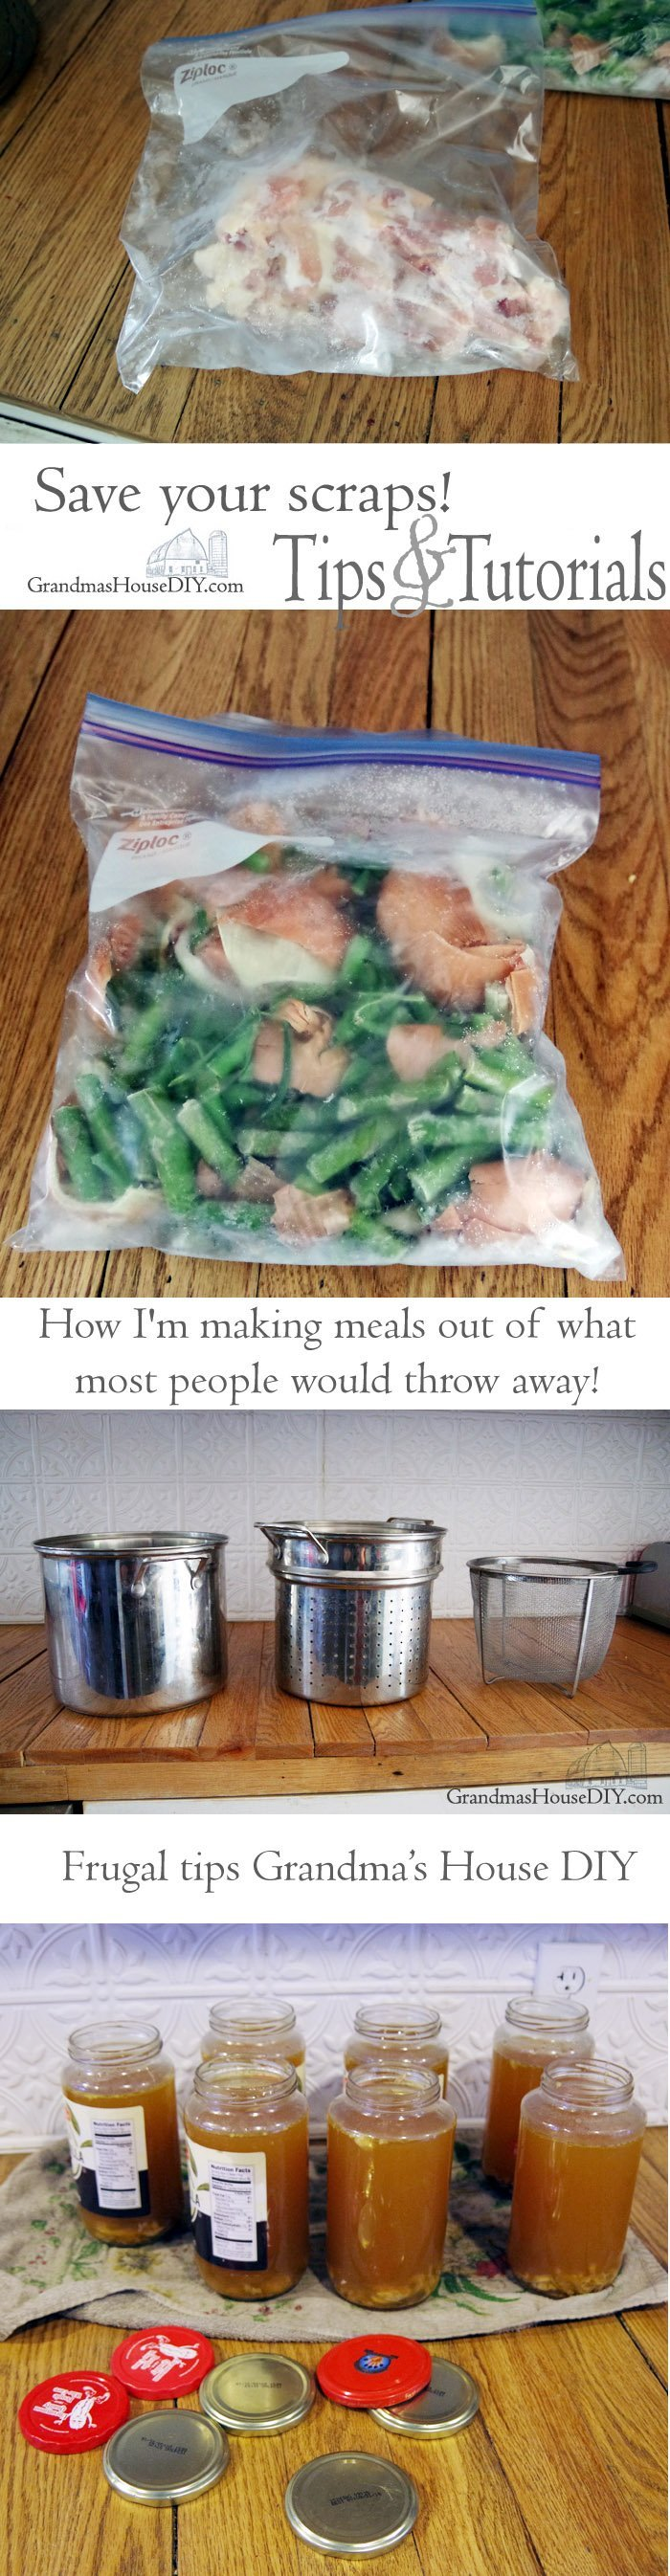 My favorite frugal kitchen tips and how I'm making meals out of what most people would throw away! making chicken broth our of nothing but kitchen scraps!